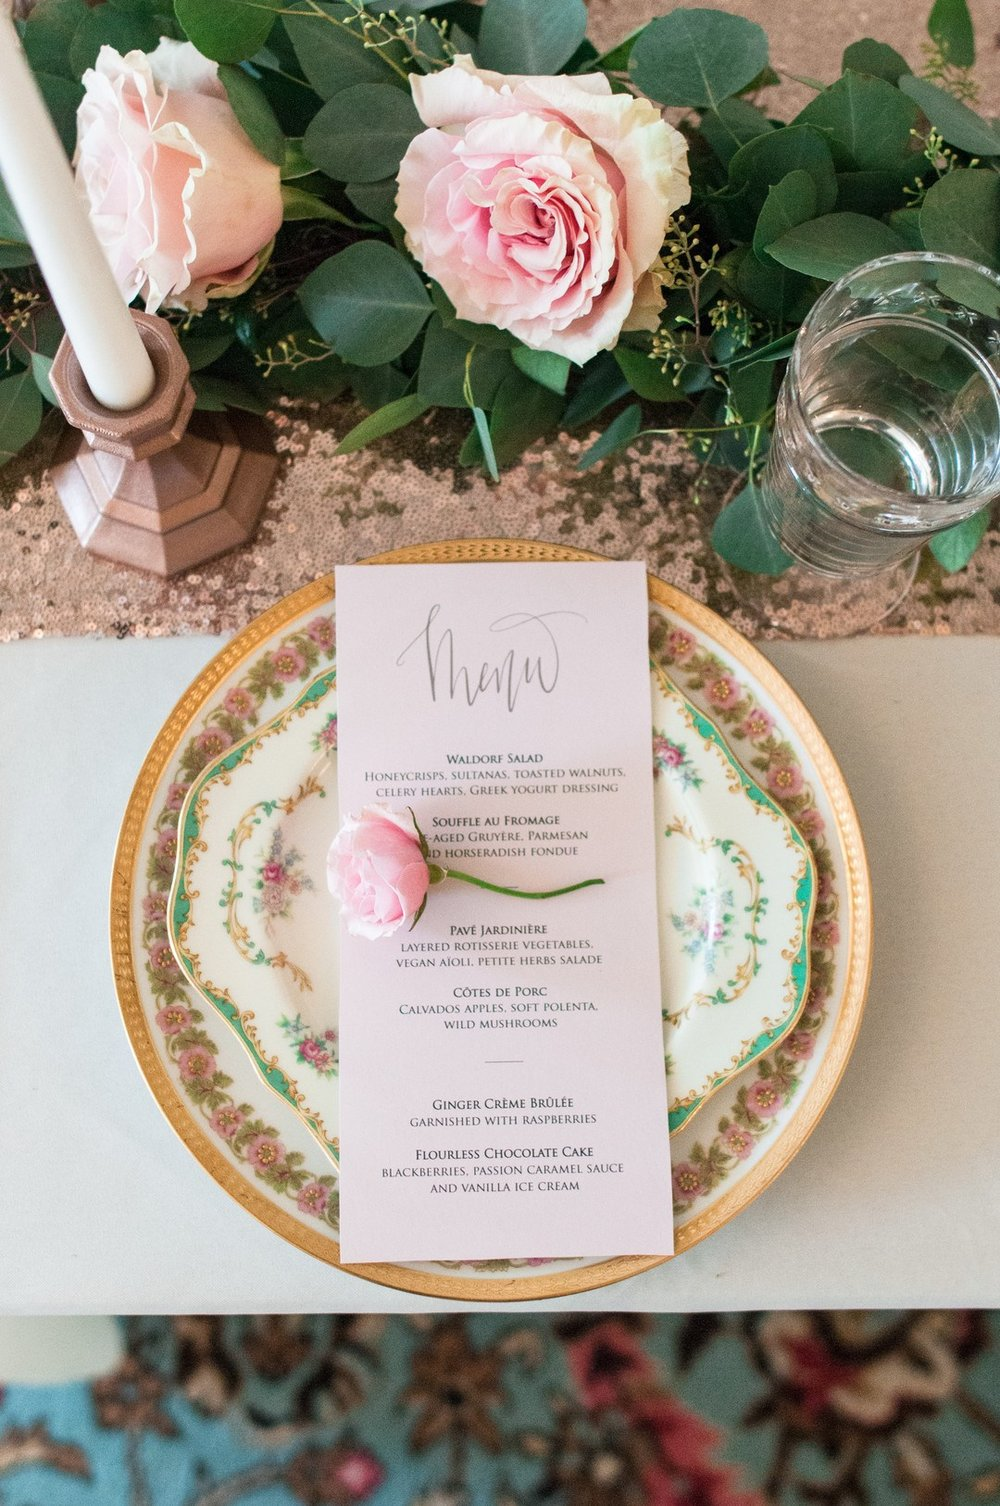 Coppola Creative Wedding Stationery _ Kristina Staal Photo and George and Claudia Photography18.jpg